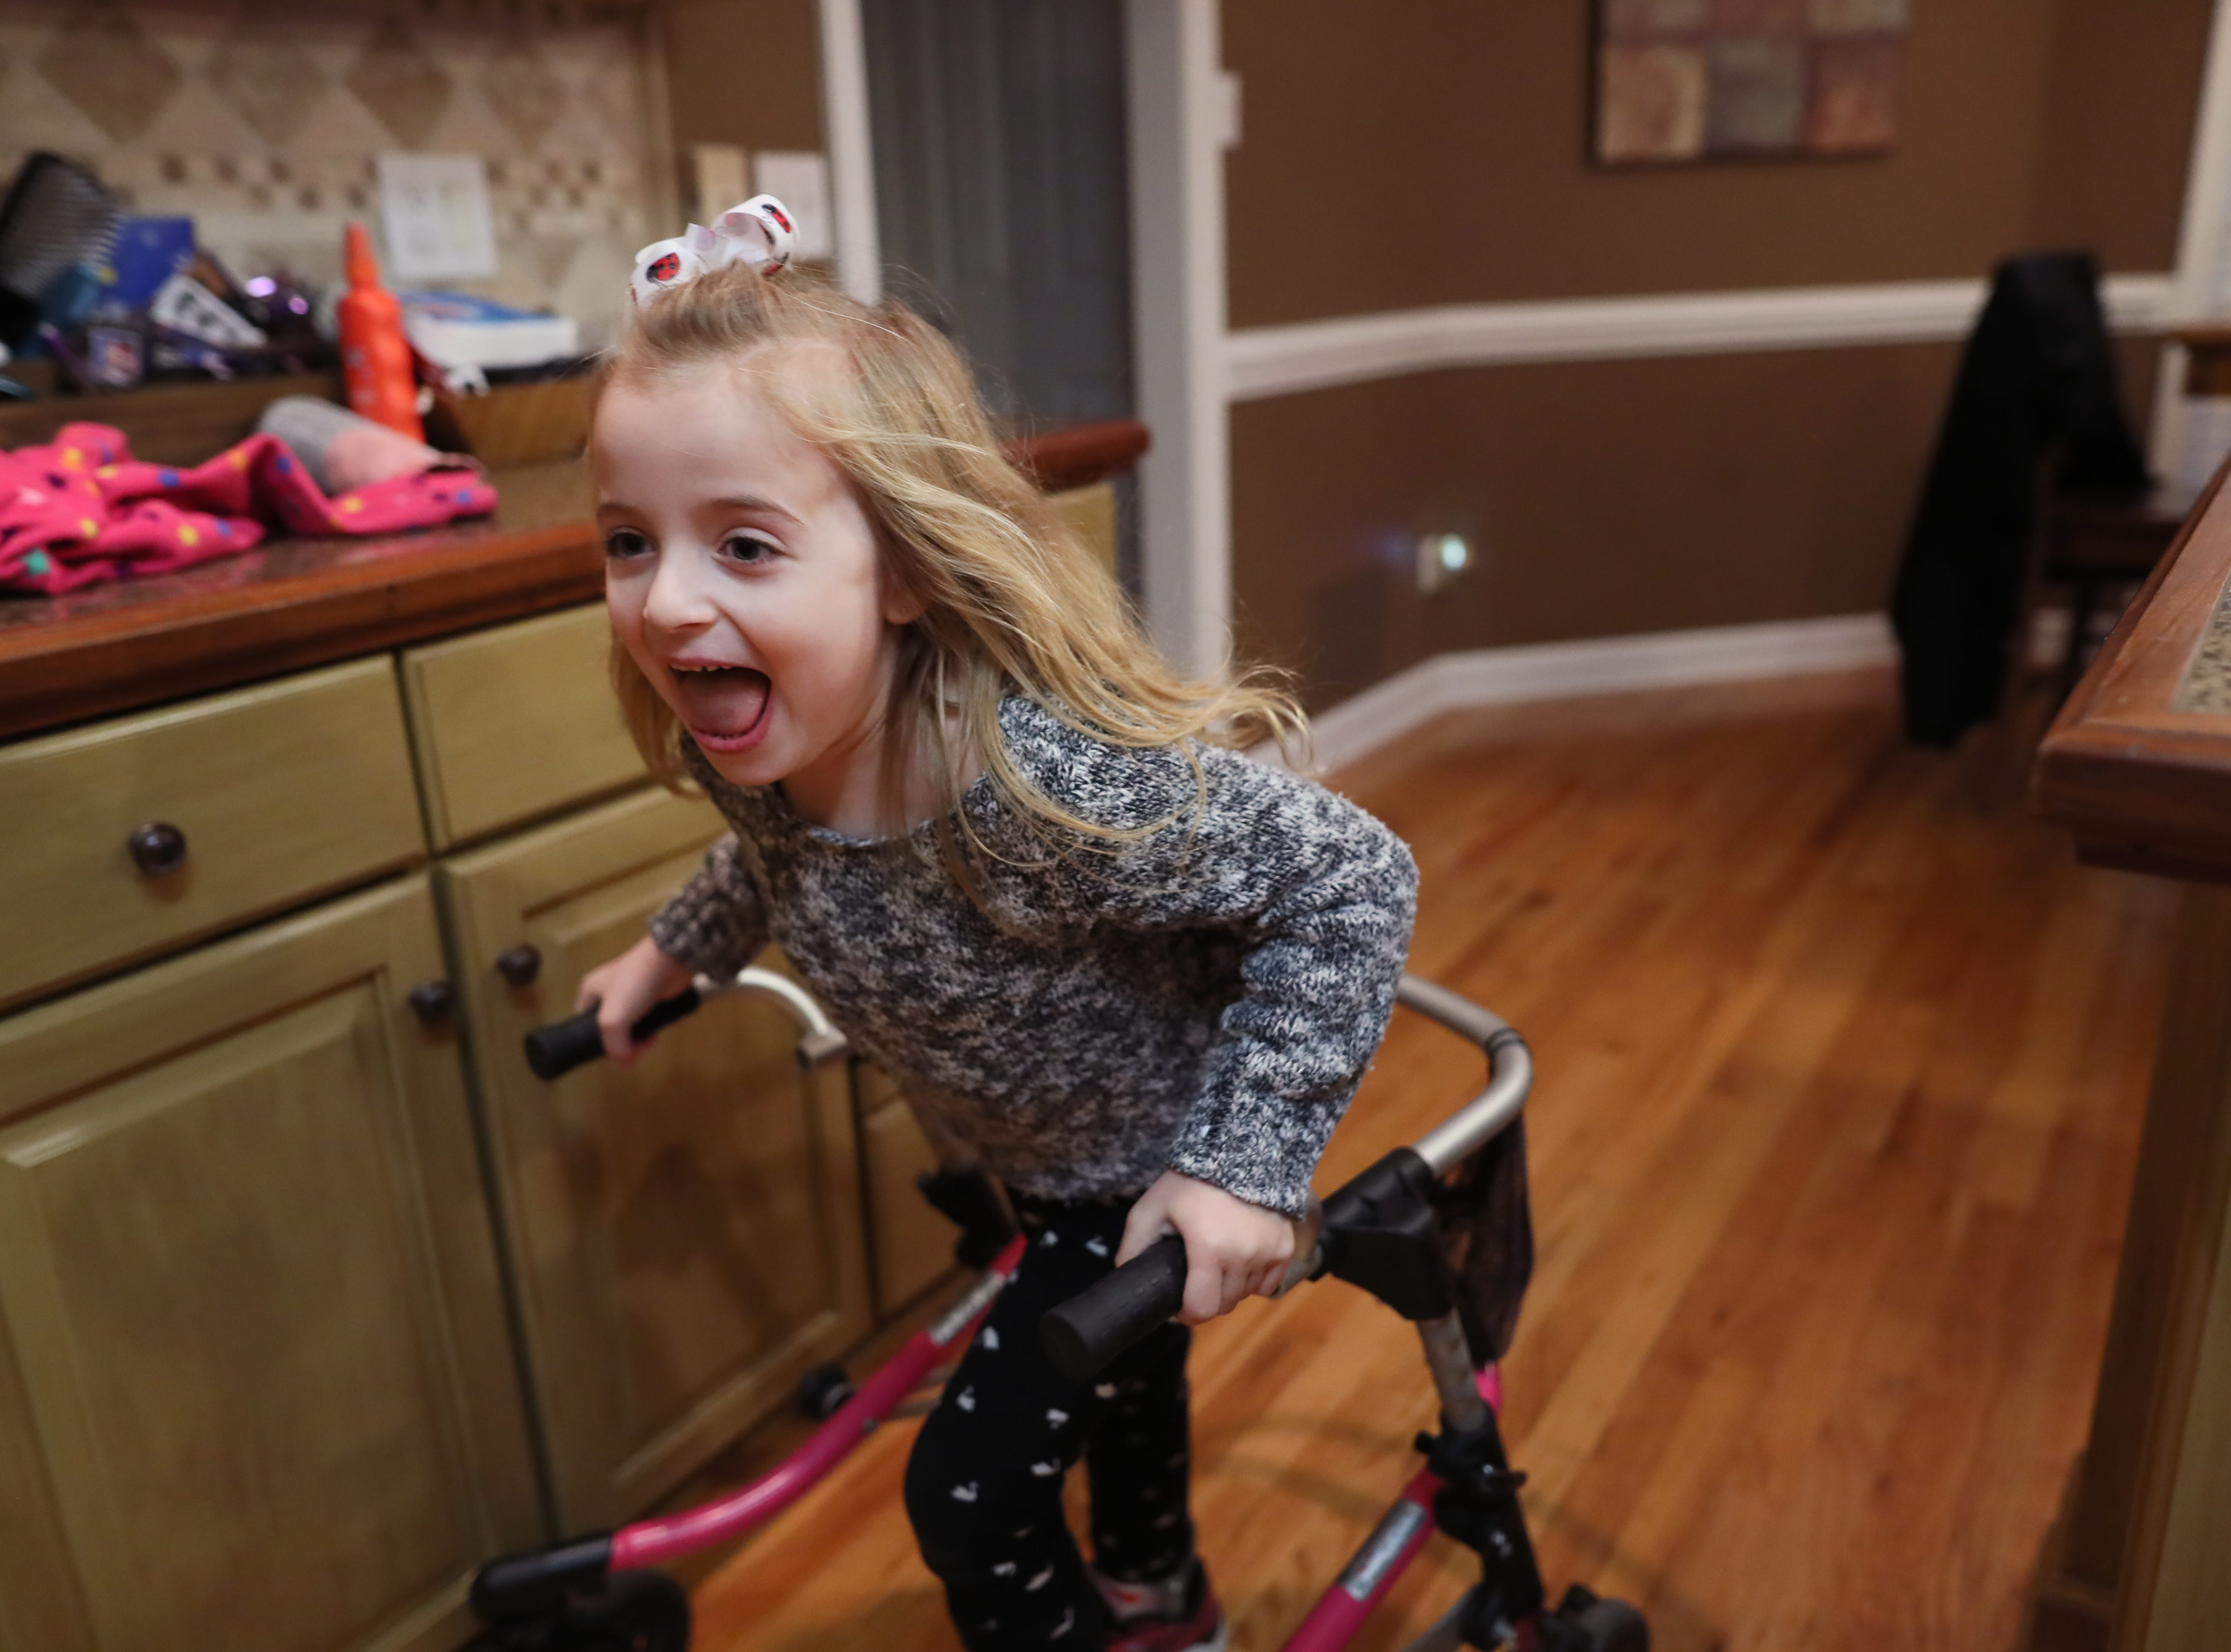 Ava Reed, 6, uses her walker to scramble around the family kitchen at their Arlington home on Friday, Jan. 11, 2019. Ava lives with Charcot-Marie-Tooth Disease, which affects peripheral nerves outside the brain that send signals to the body and can lead to weakened muscles and difficulty walking.